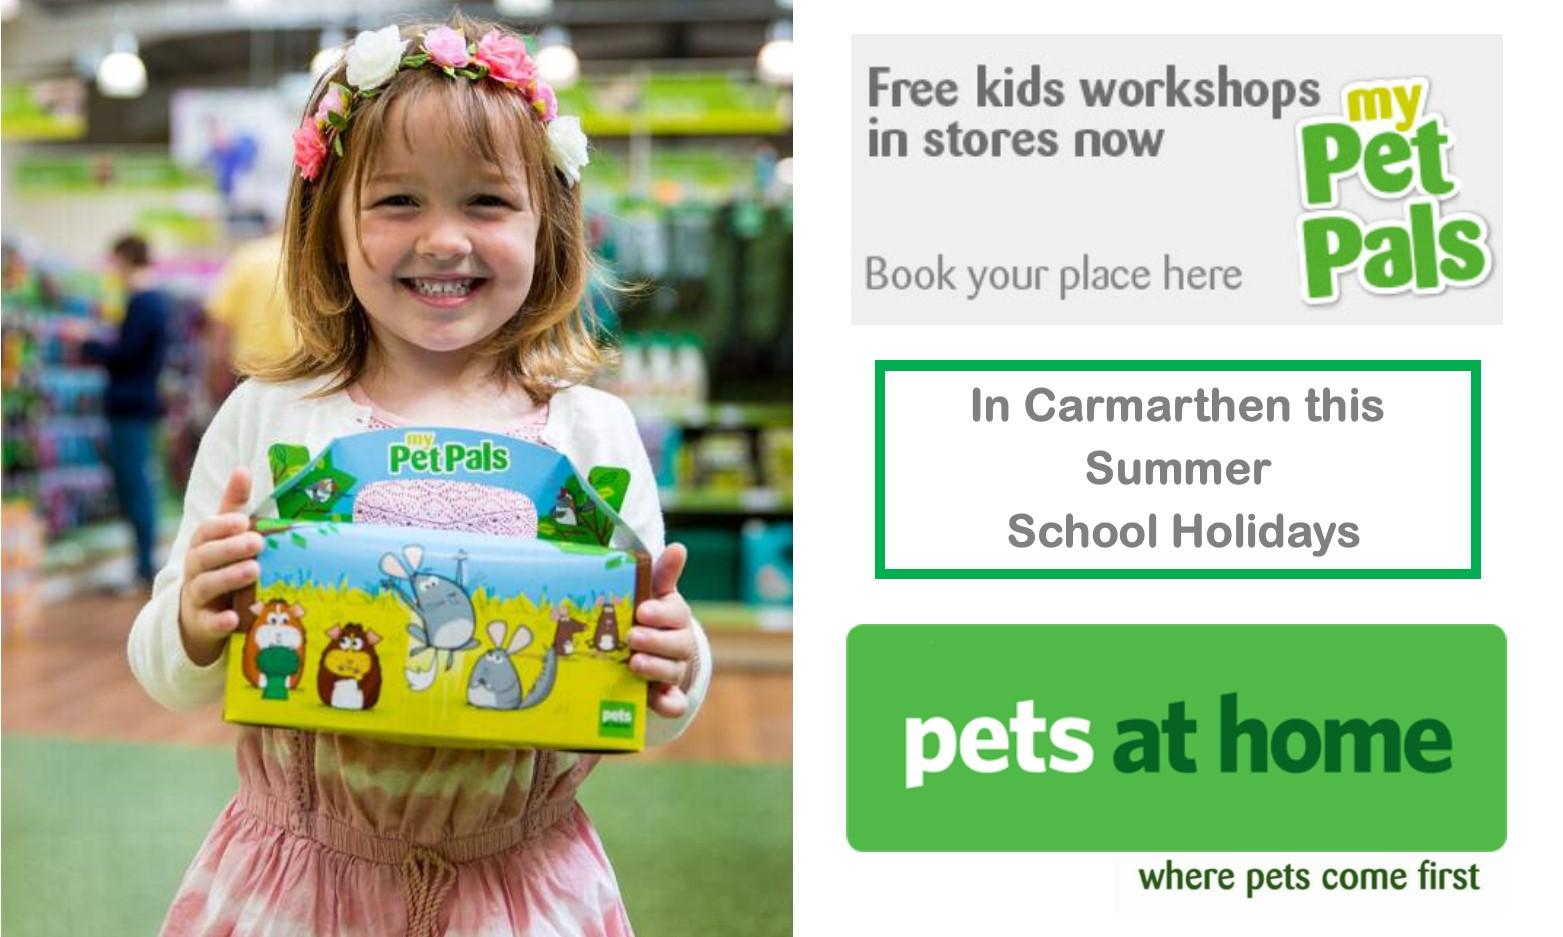 Summer Cool Pets at Home Workshop in Carmarthen